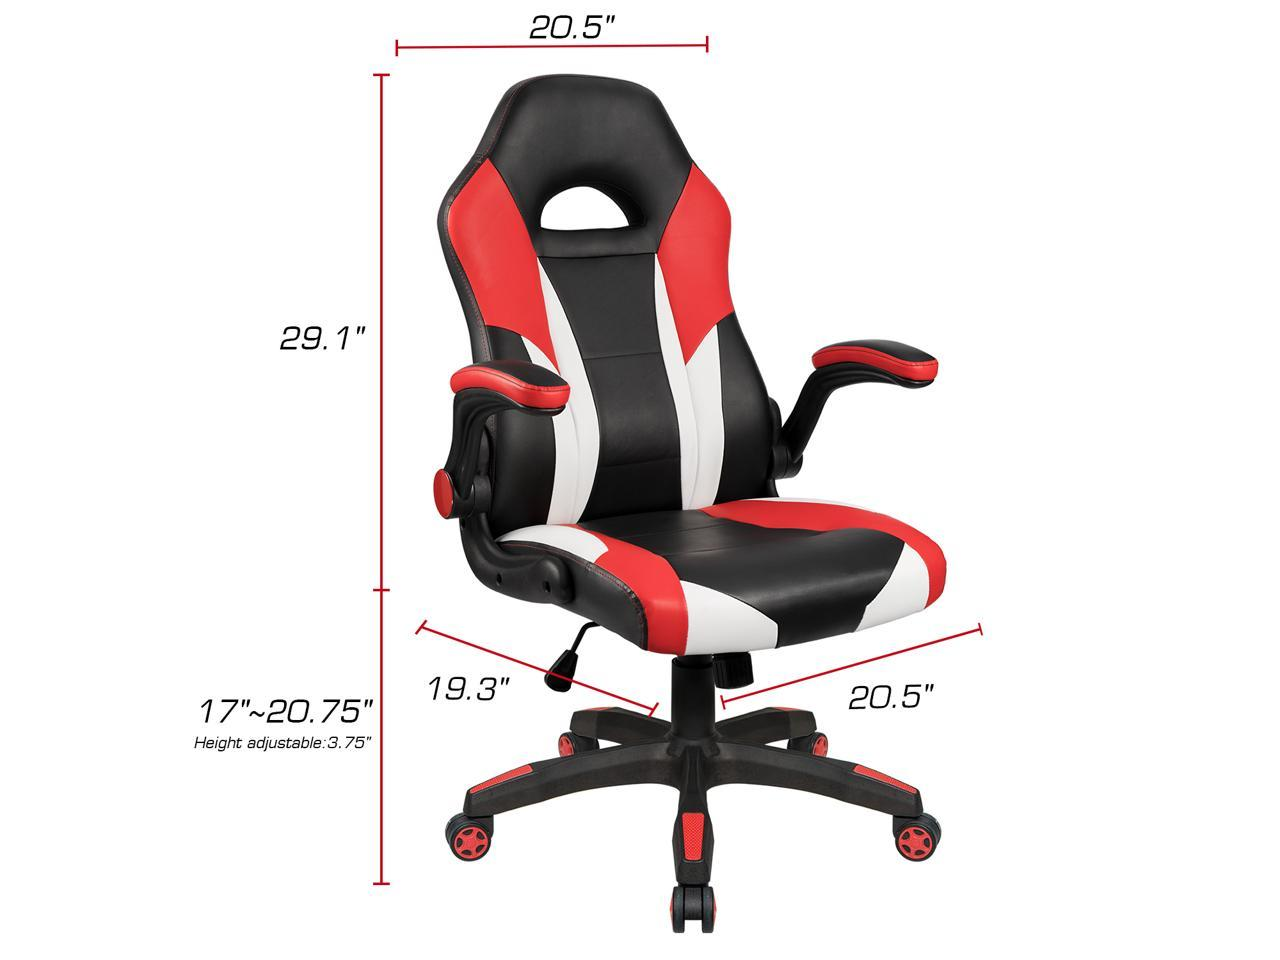 Racing Seat Office Chair Homall Gaming Desk Chair Racing Style With Wide Seat Flip Up Padded Armrests Pu Leather Ergonomic High Back And Swivel Red Black Newegg